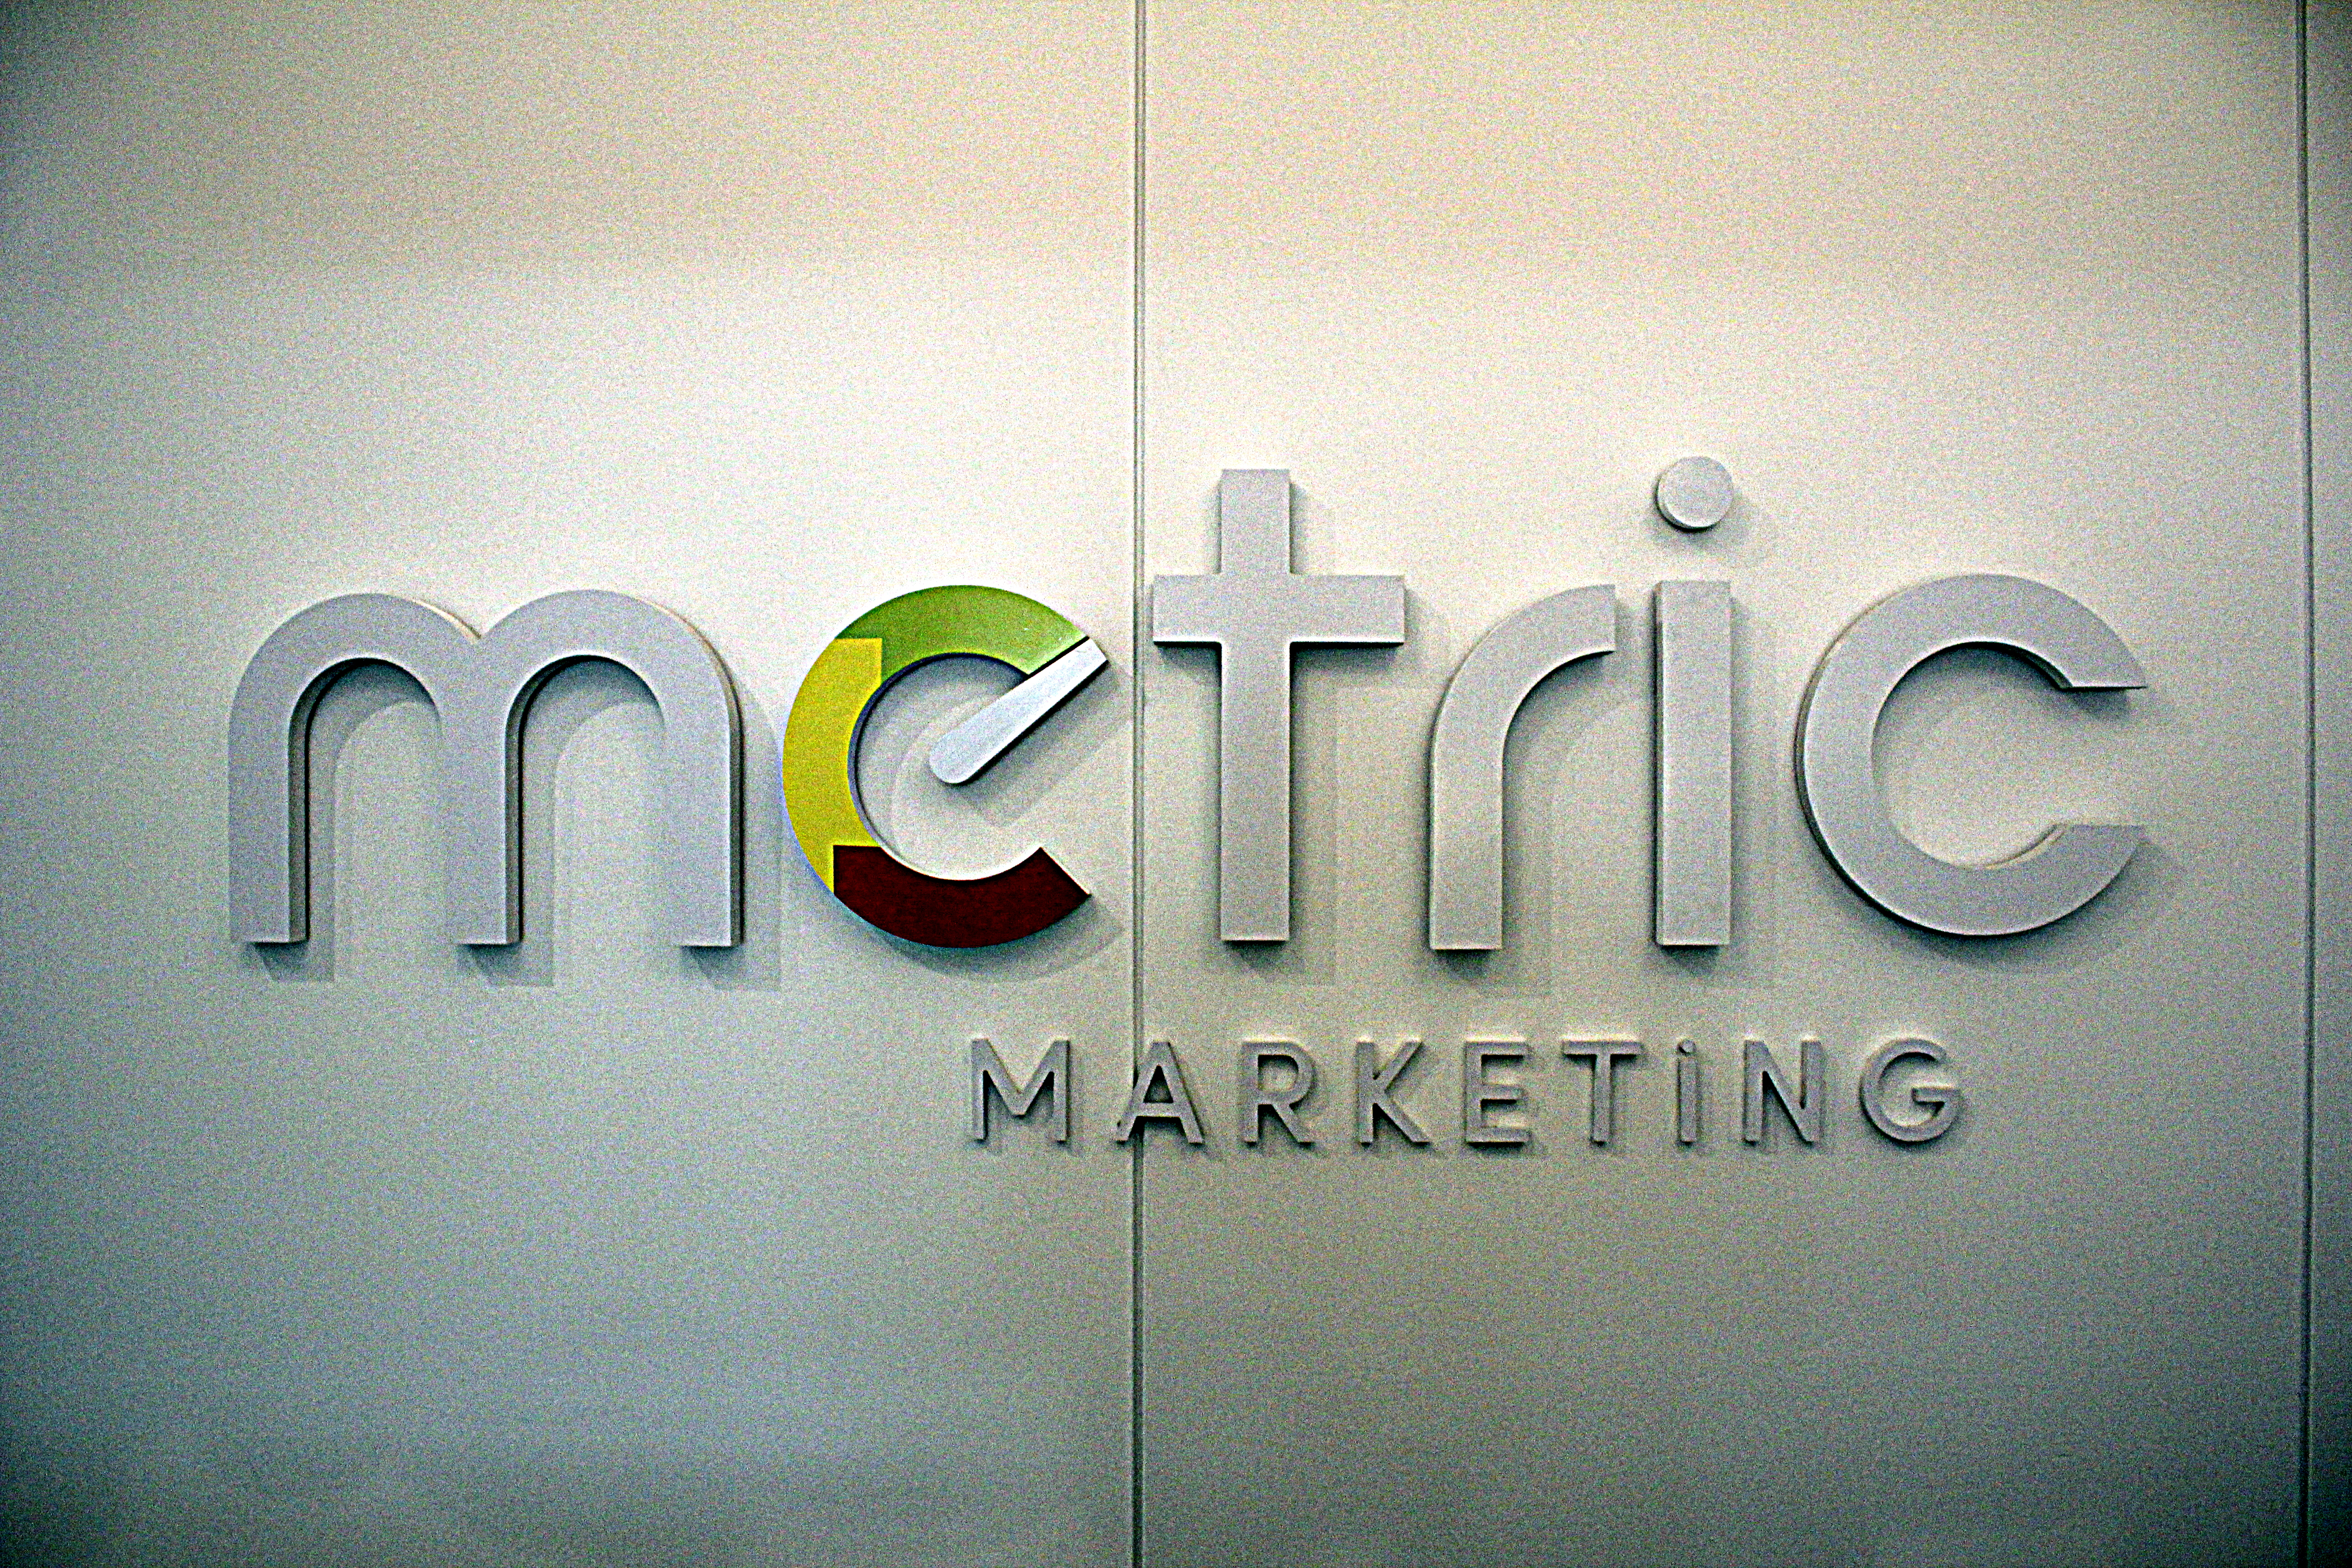 Metric Marketing - 0028